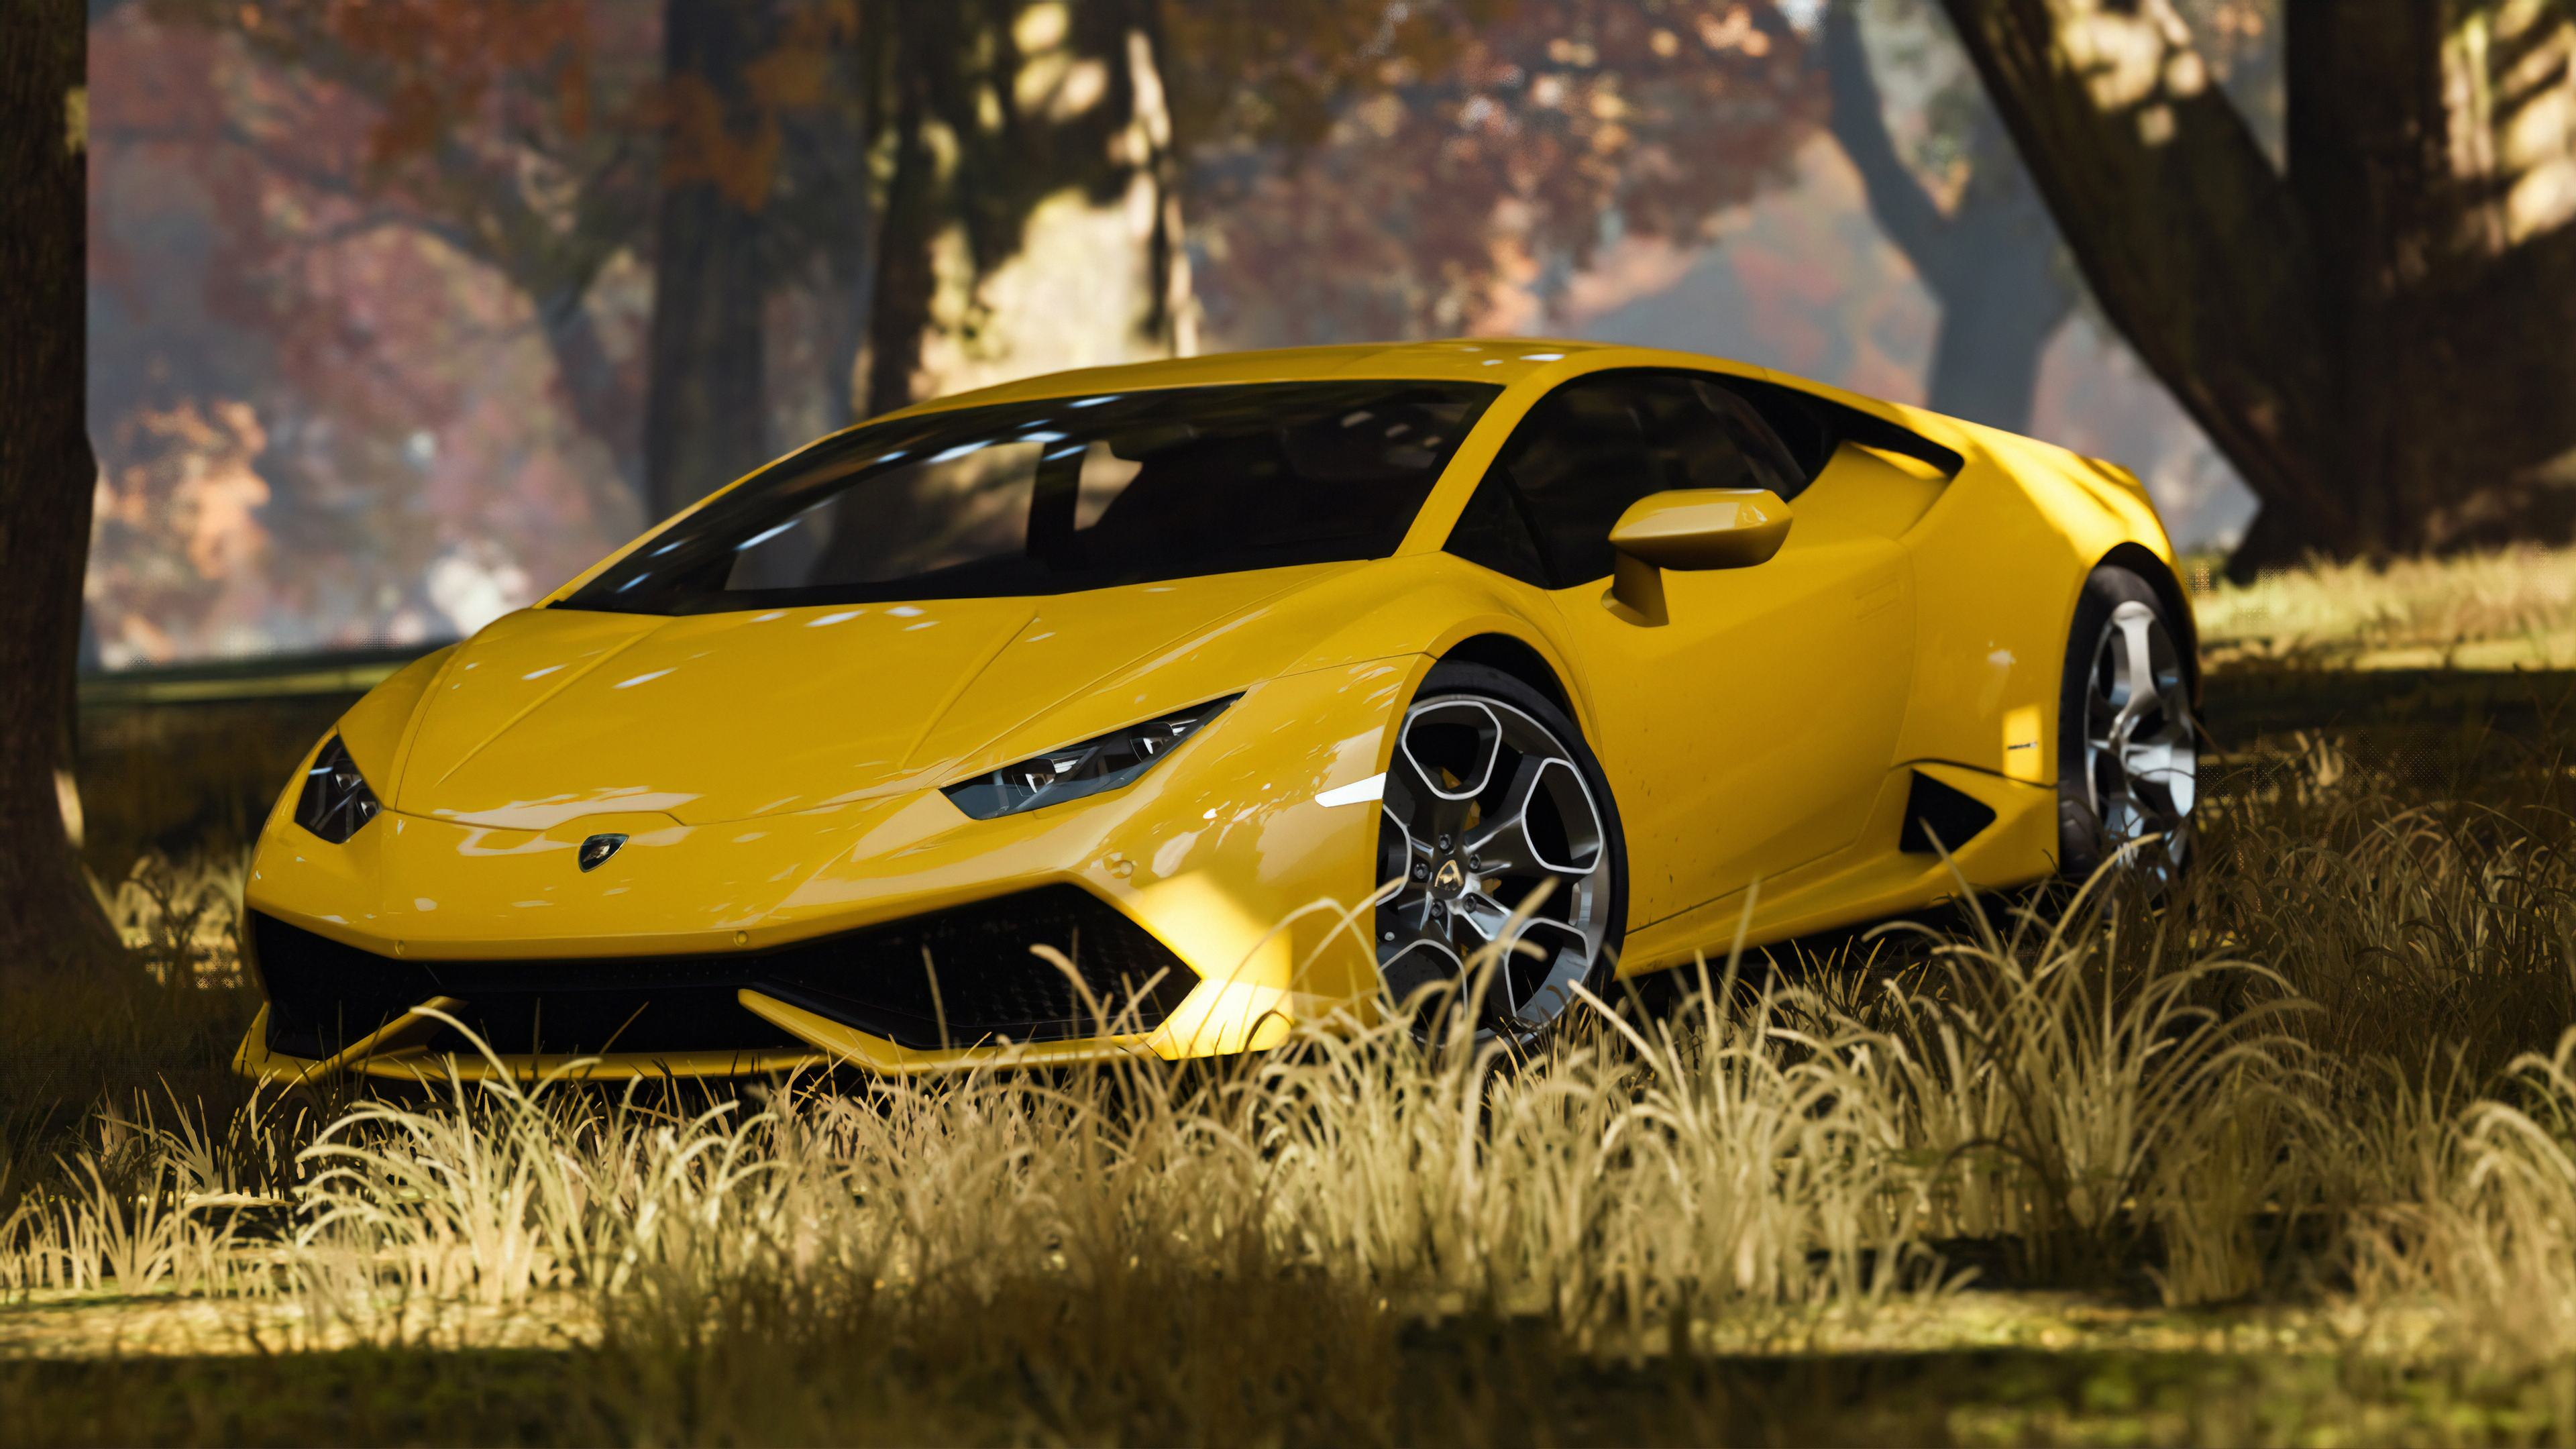 yellow lamborghini 1572660973 - Yellow Lamborghini - lamborghini wallpapers, hd-wallpapers, cars wallpapers, artstation wallpapers, 4k-wallpapers